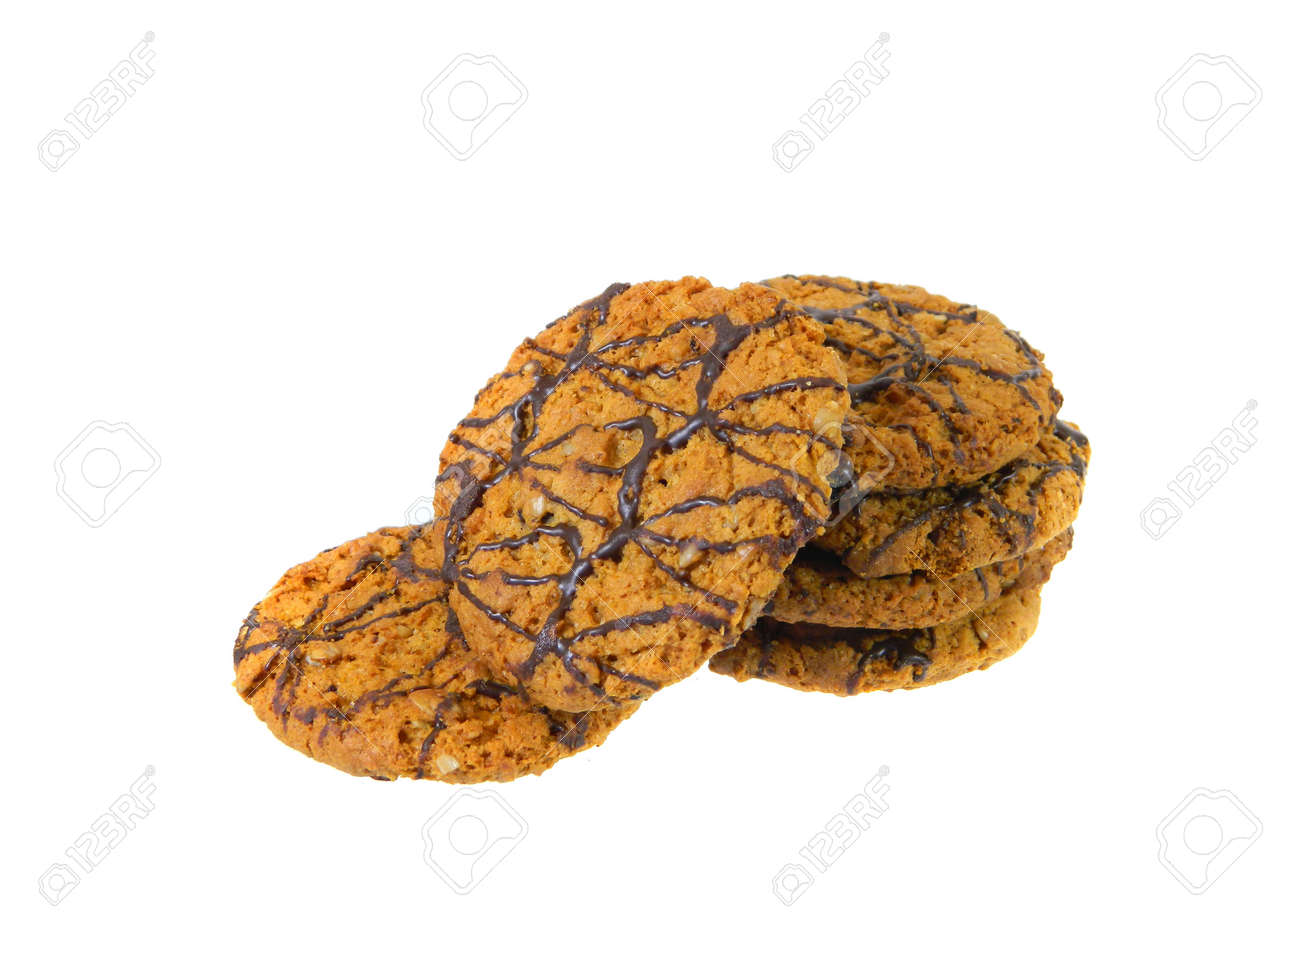 cookies isolated on white background - 171856473